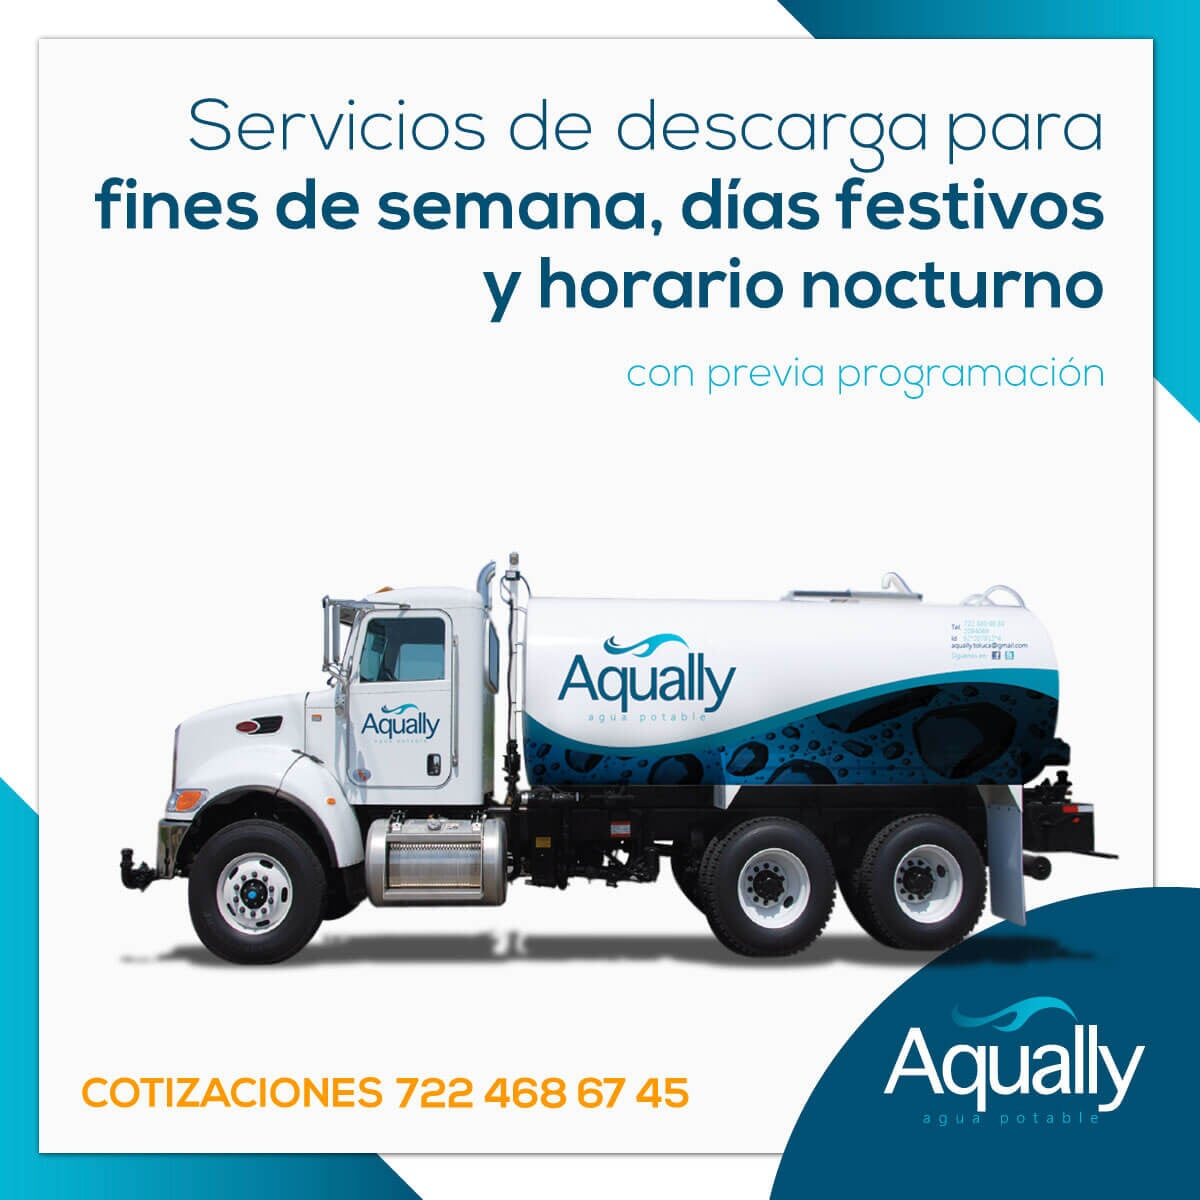 AQUALLY -  Servicios de descarga para fines de semana